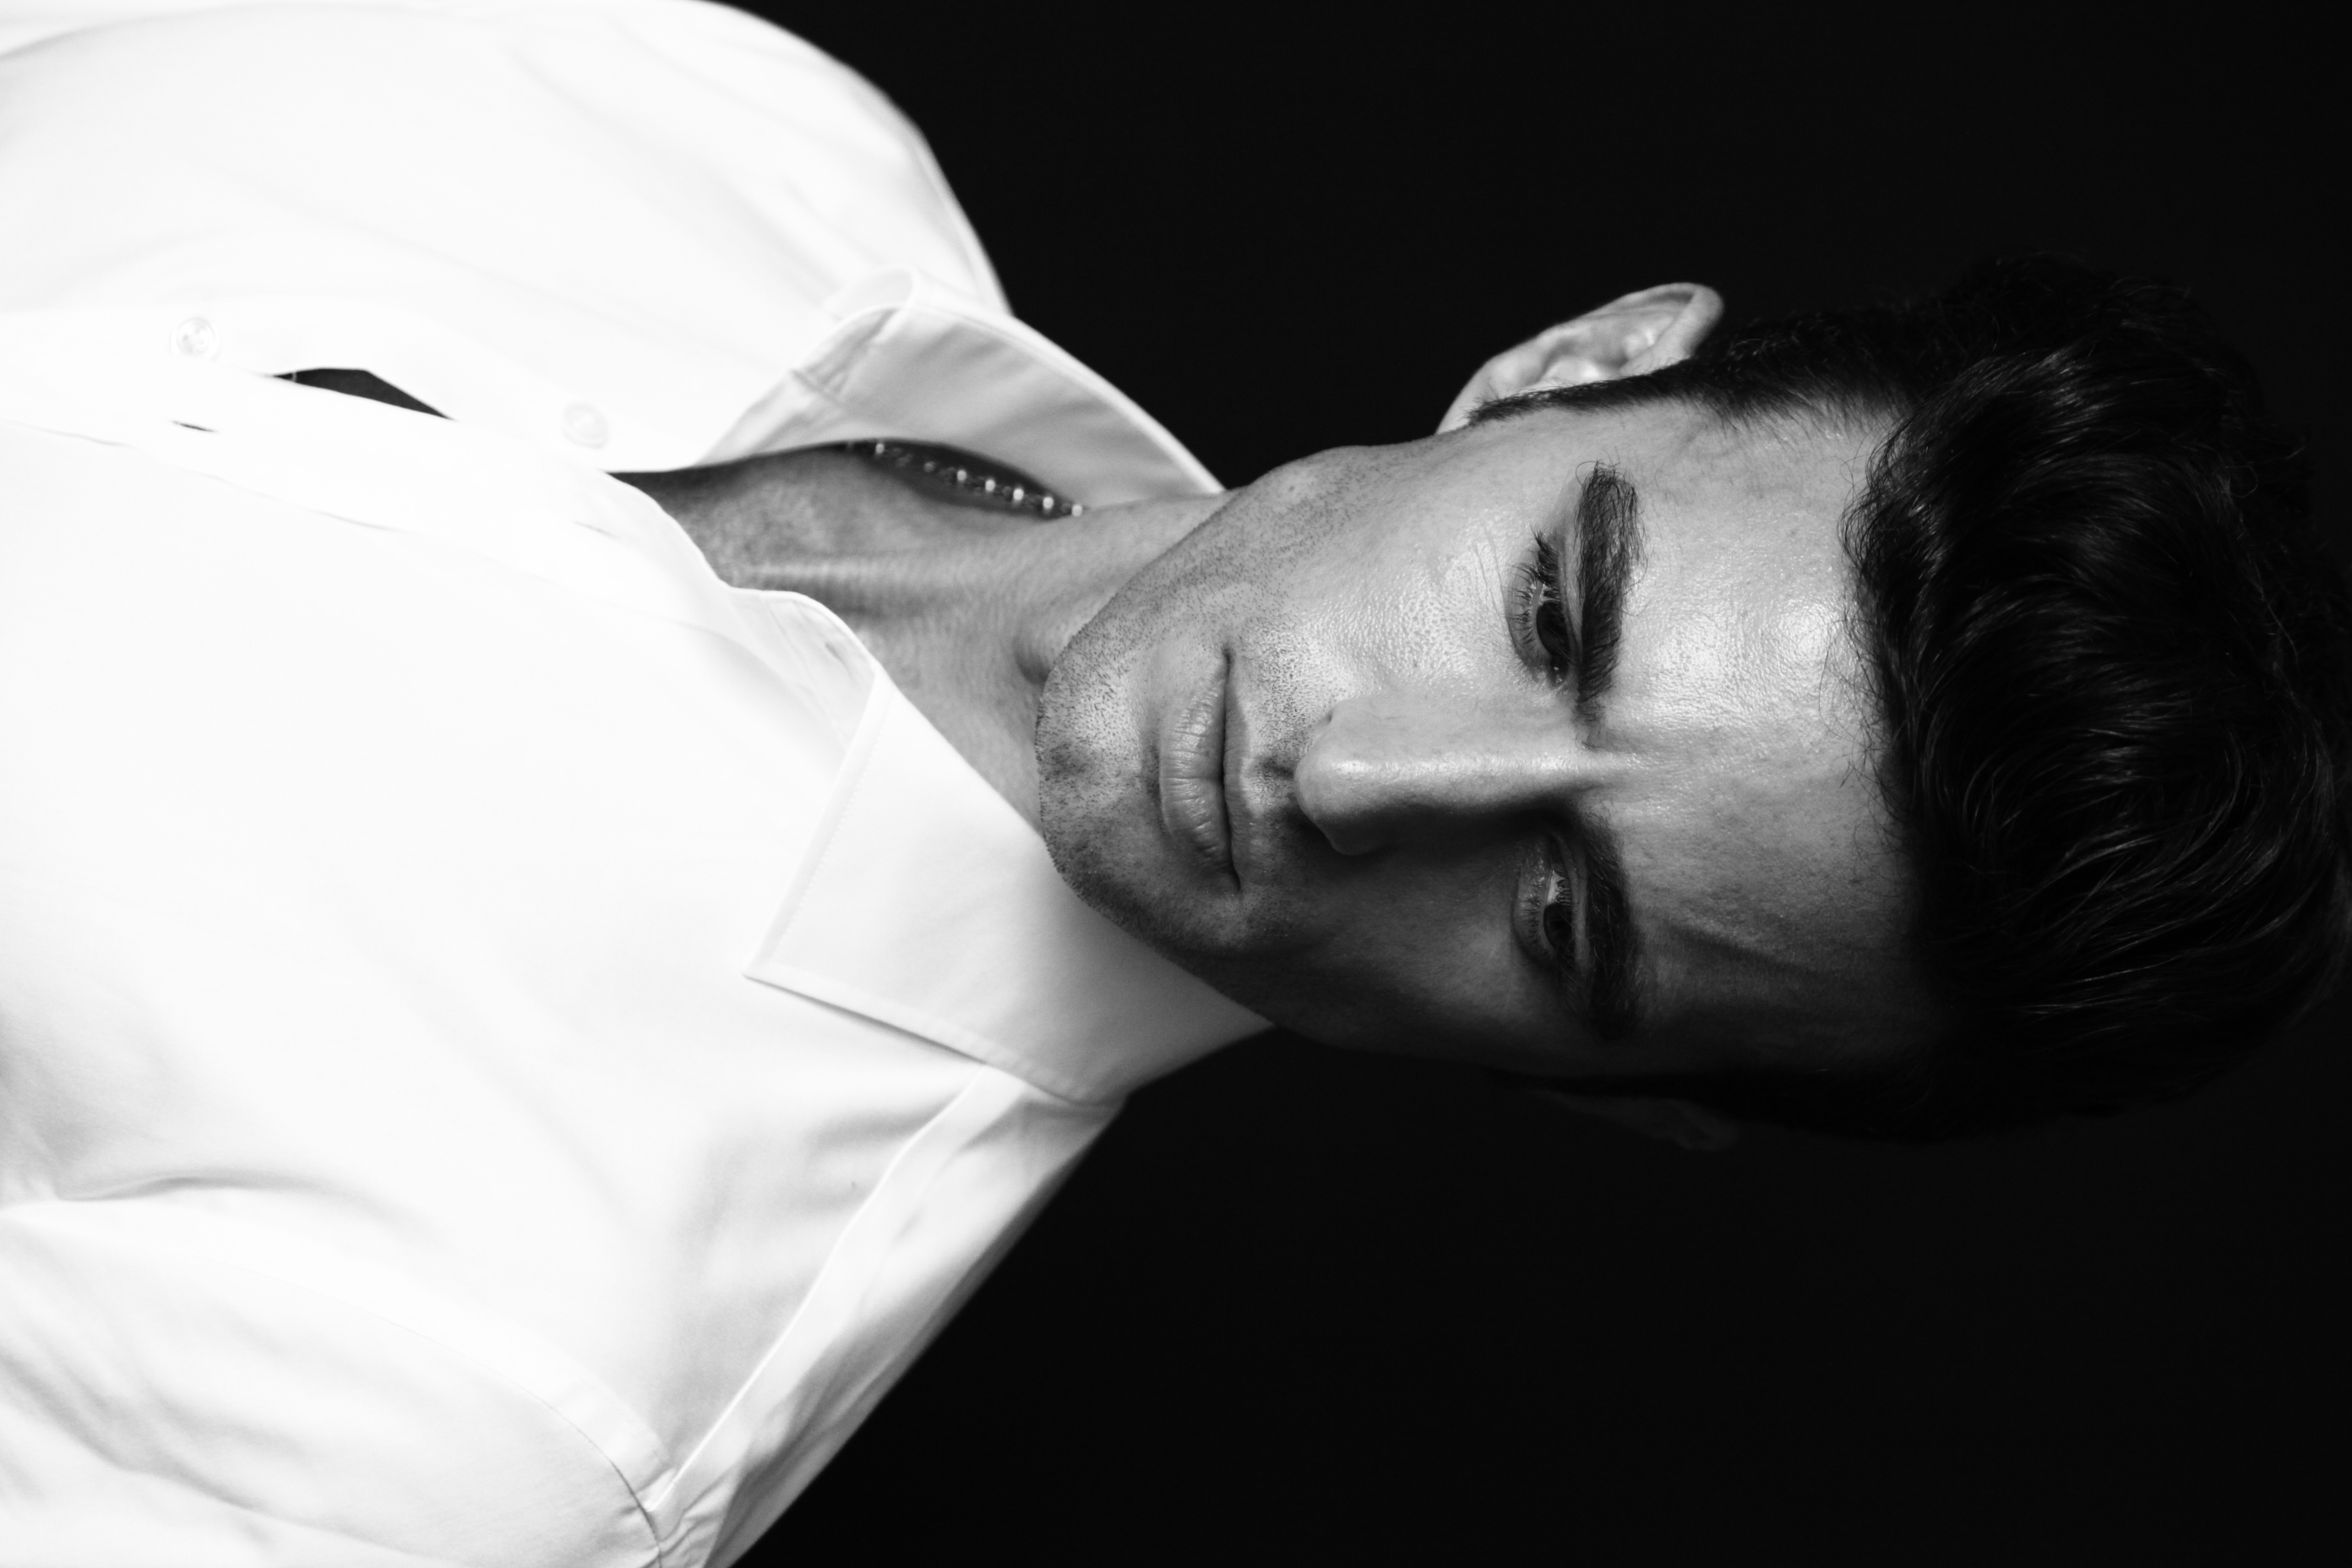 Raul Pardeilhan by Kevin Zhou